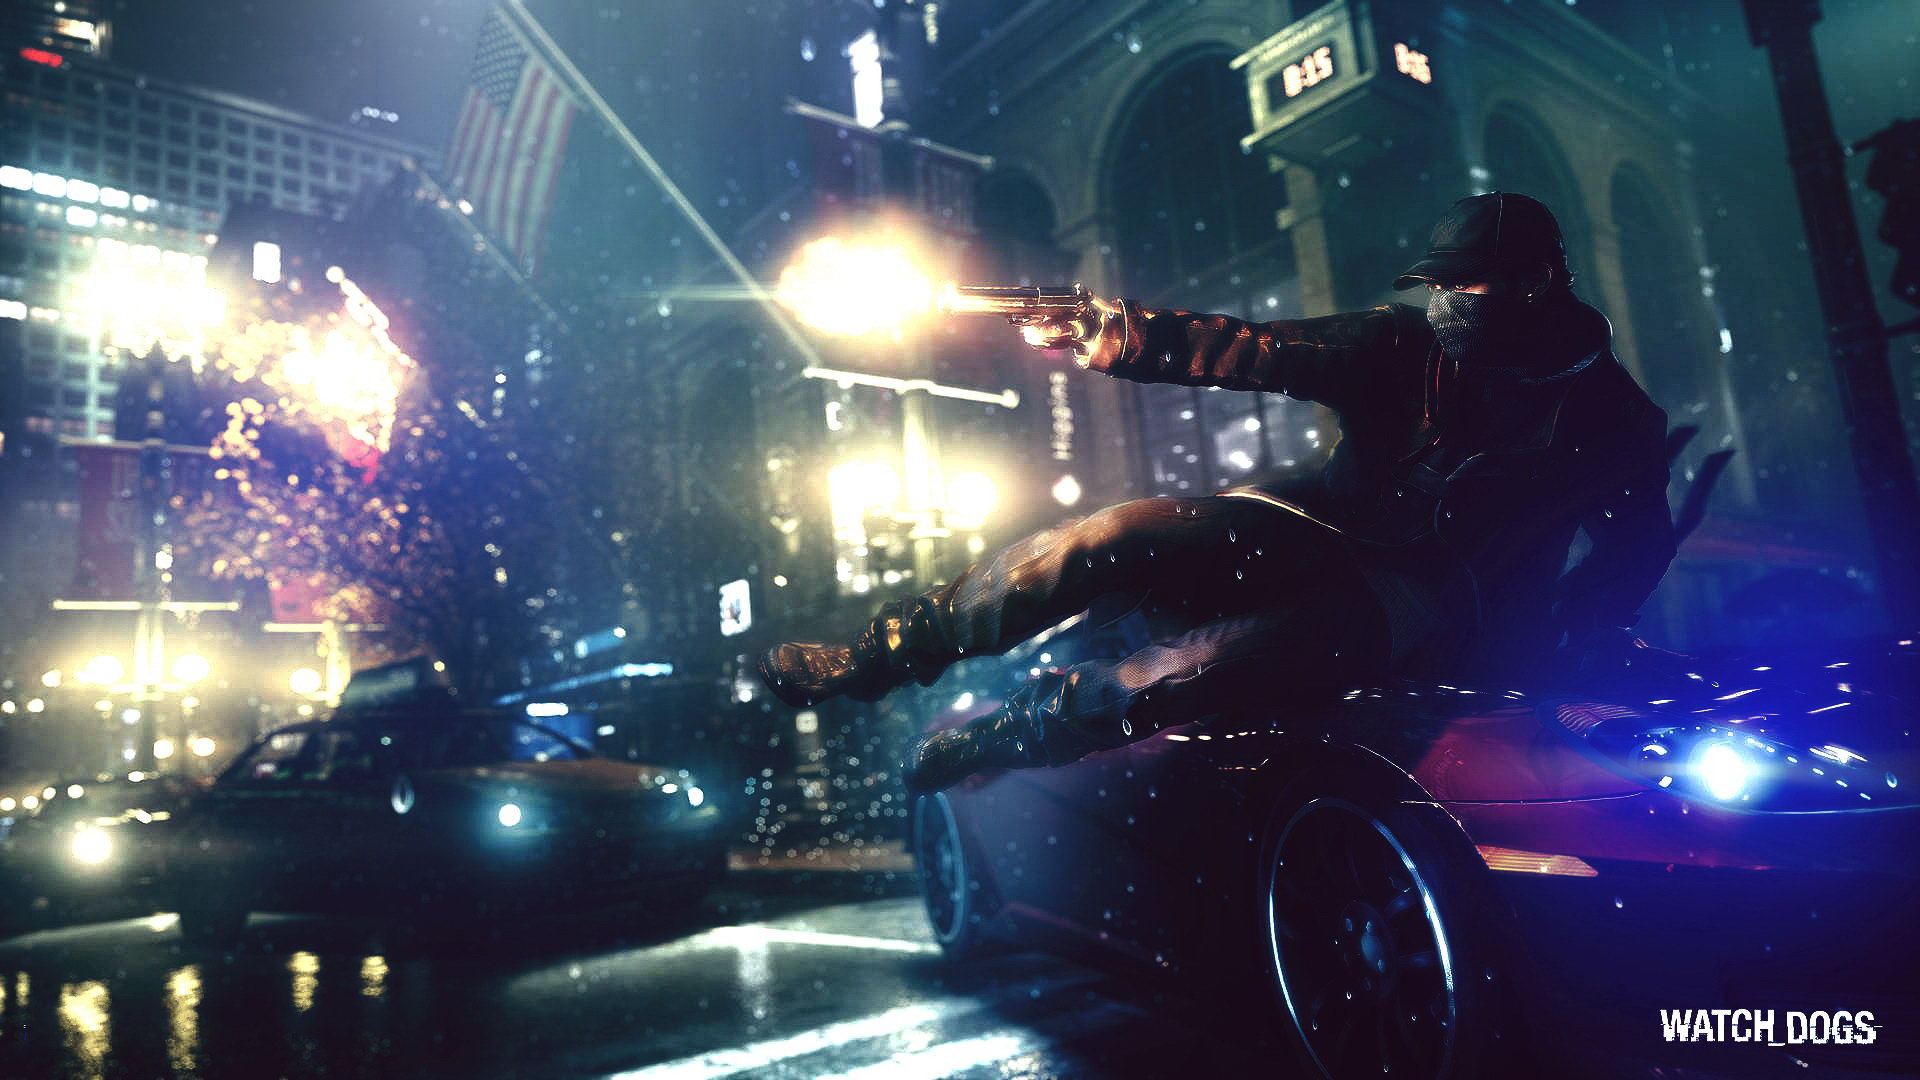 """ubisoft: watch dogs progressing """"very well,""""it will become top"""